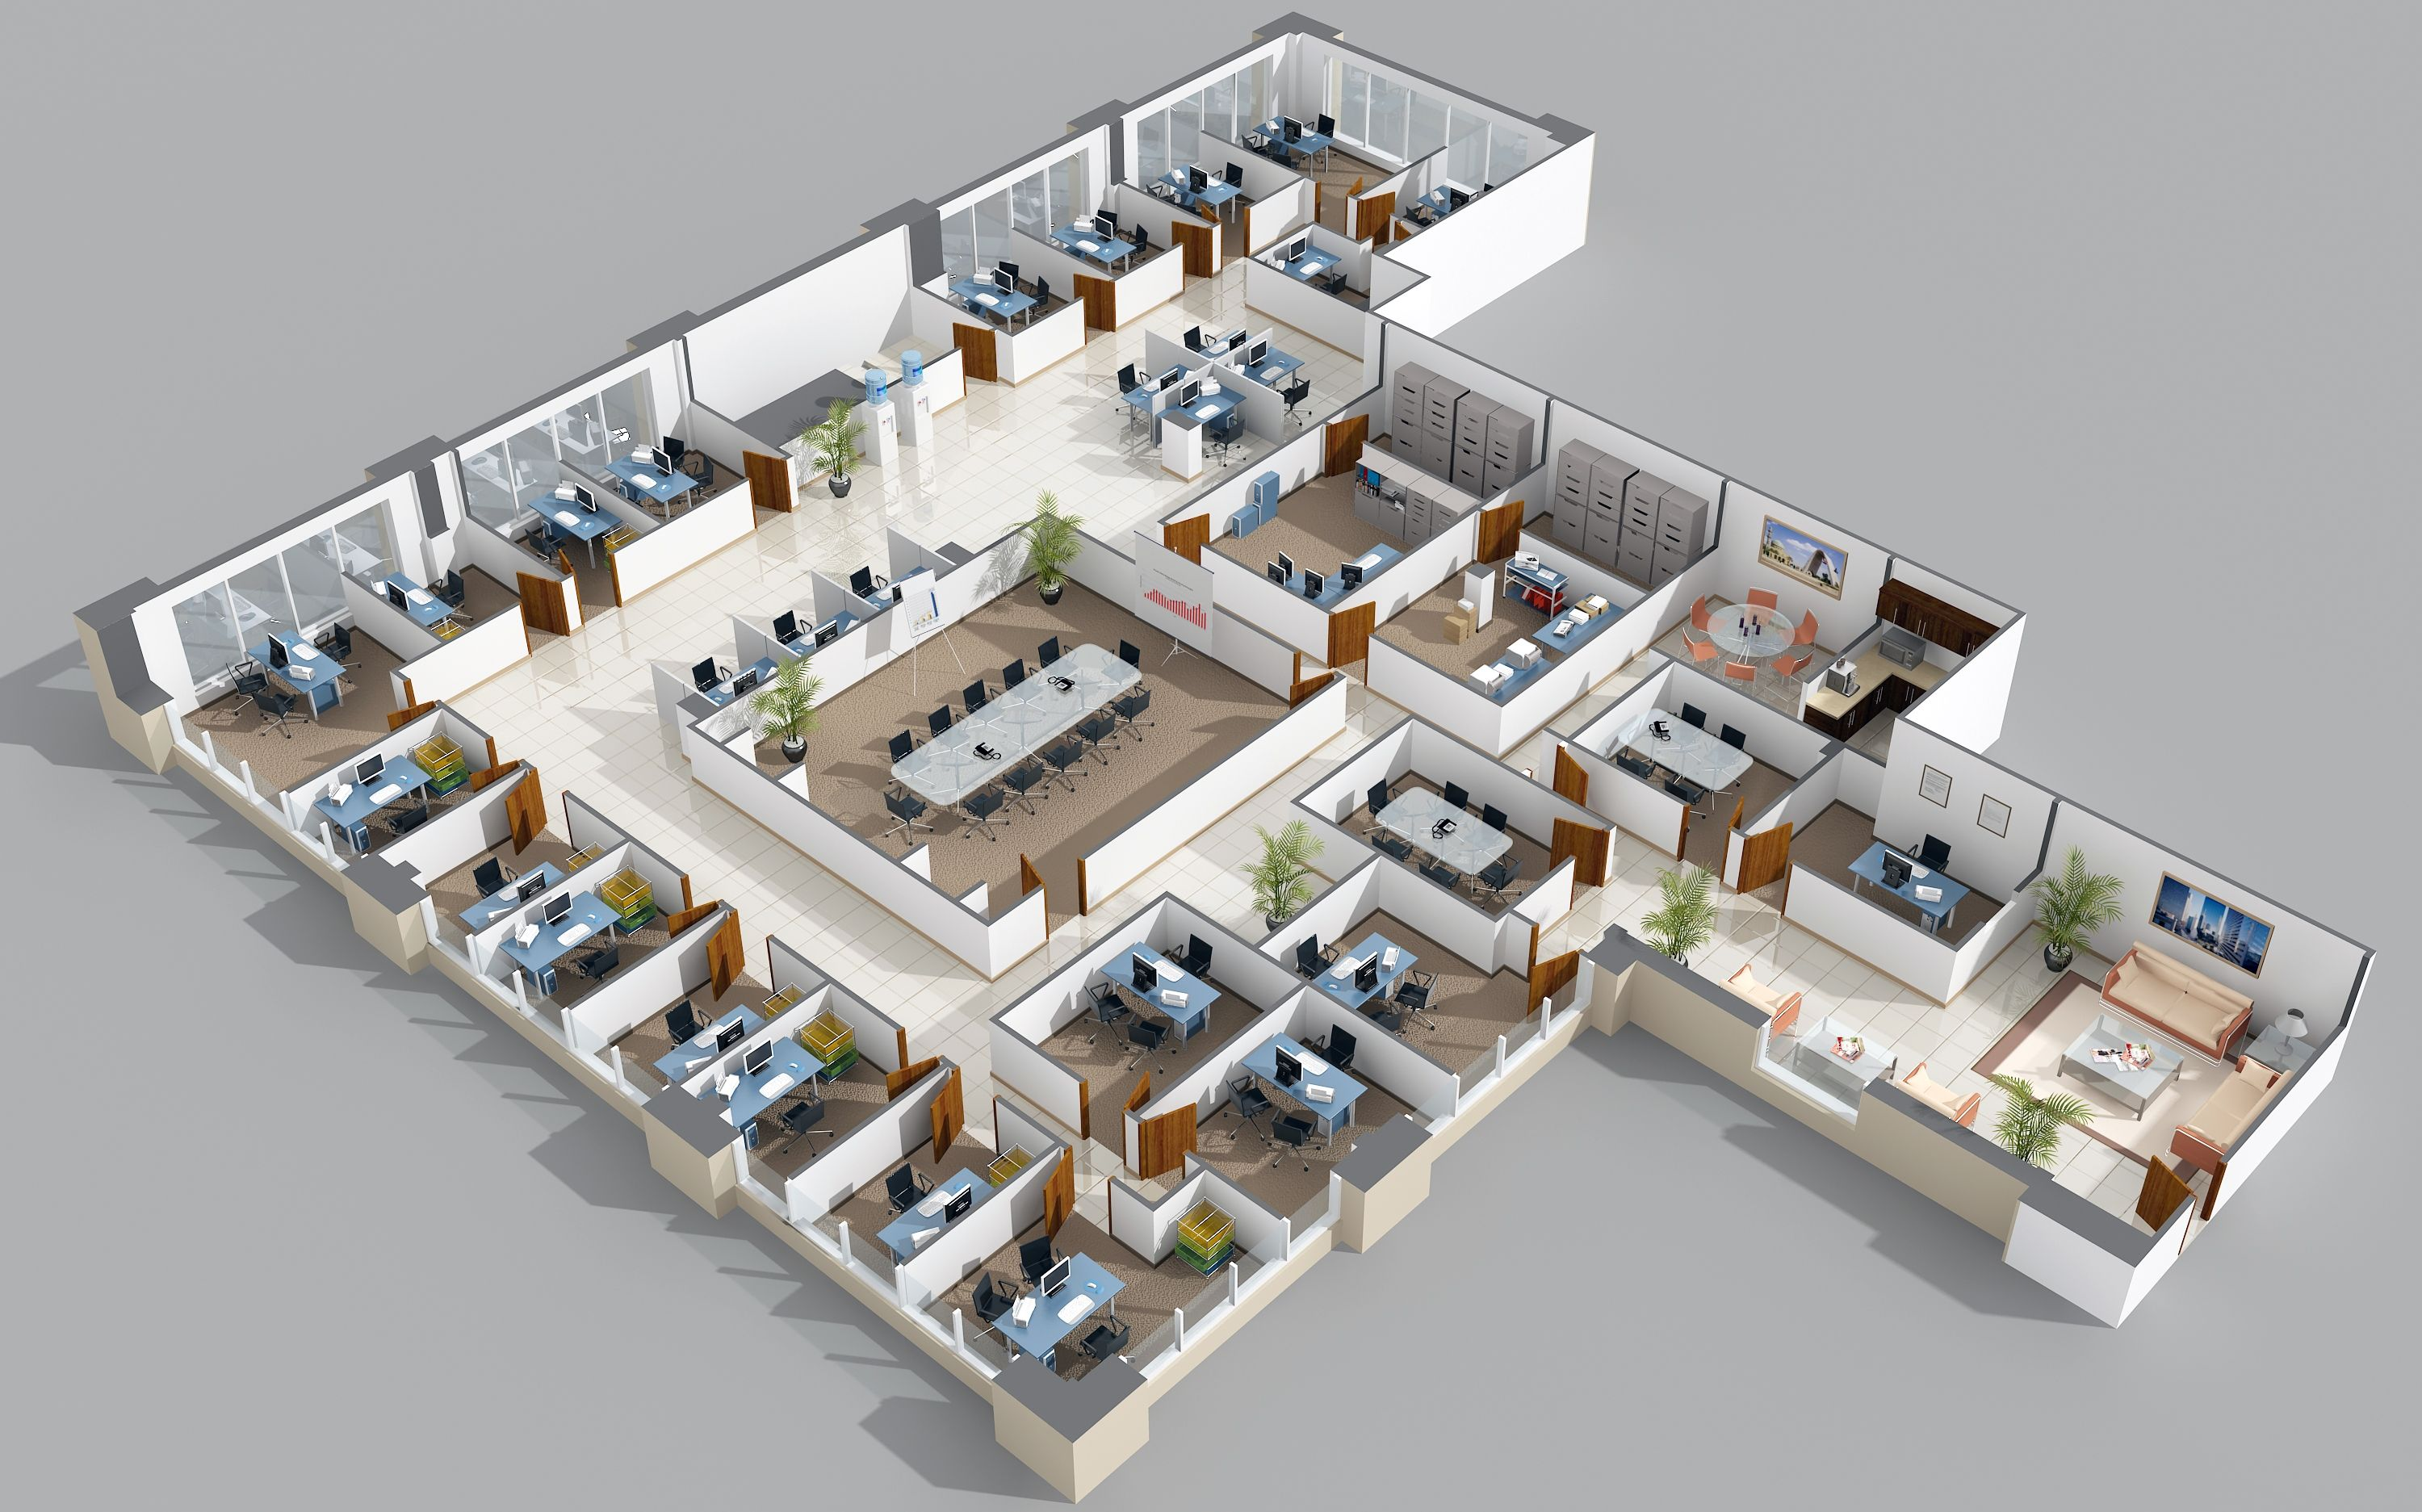 Office layout no doors veritas 99 jean pinterest for Best office plans